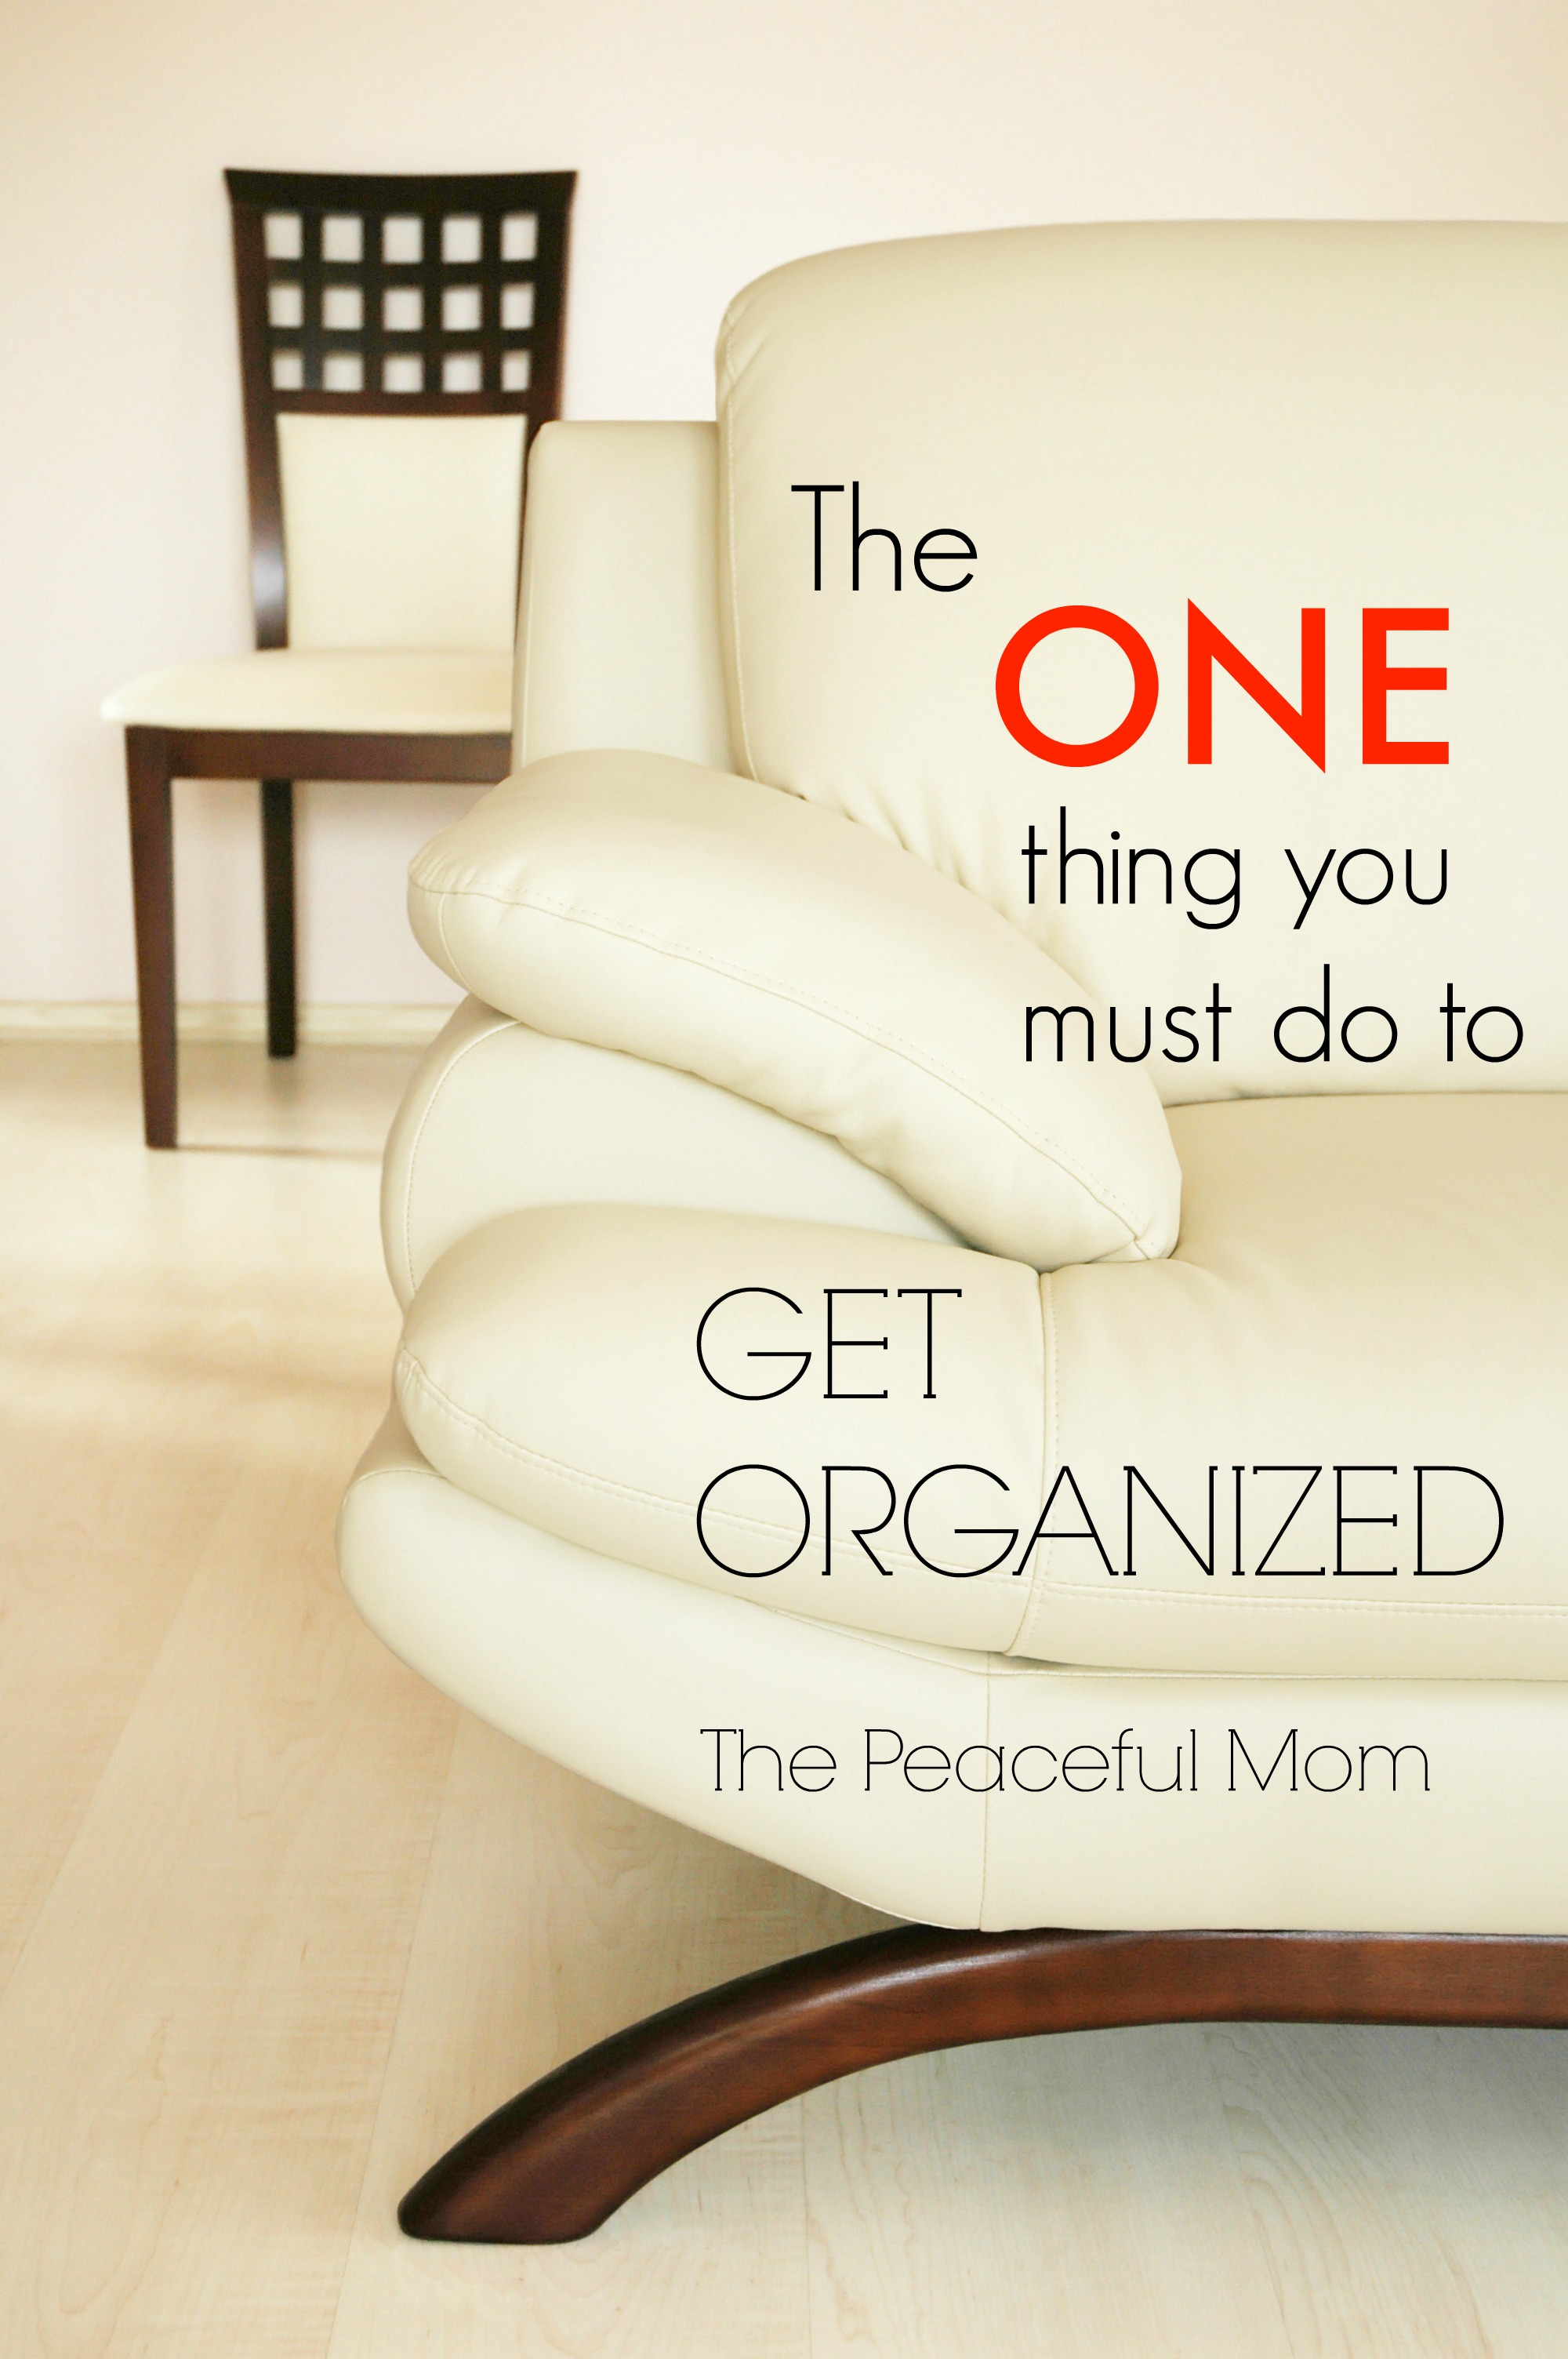 The One Thing You Must Do To Get Organized  - The Peaceful Mom -